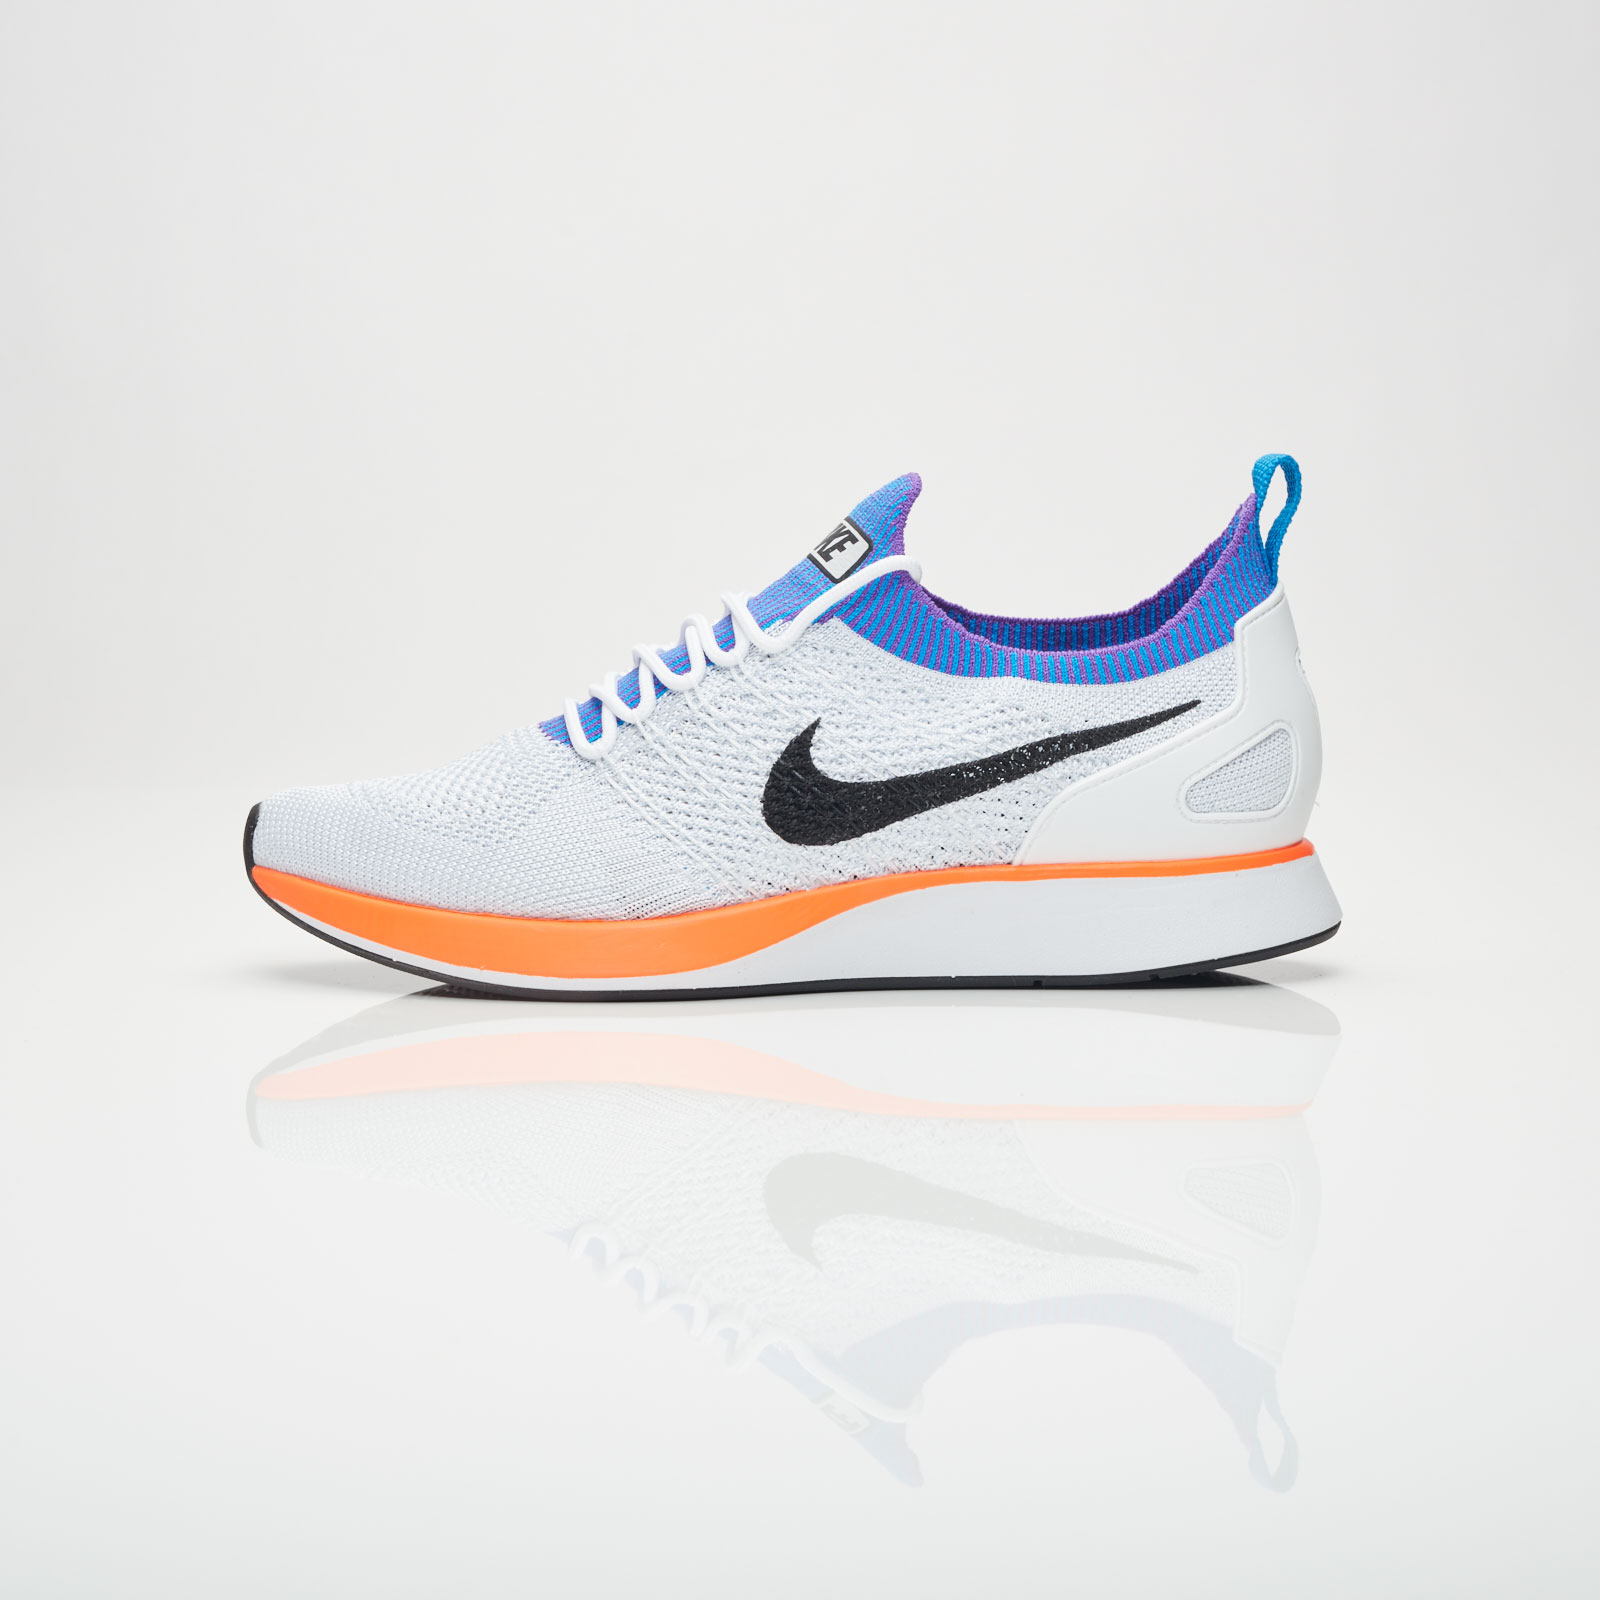 finest selection a4cb1 3aff1 Nike Air Zoom Mariah Flyknit Racer - 918264-100 - Sneakersnstuff I Sneakers  & Streetwear online seit 1999